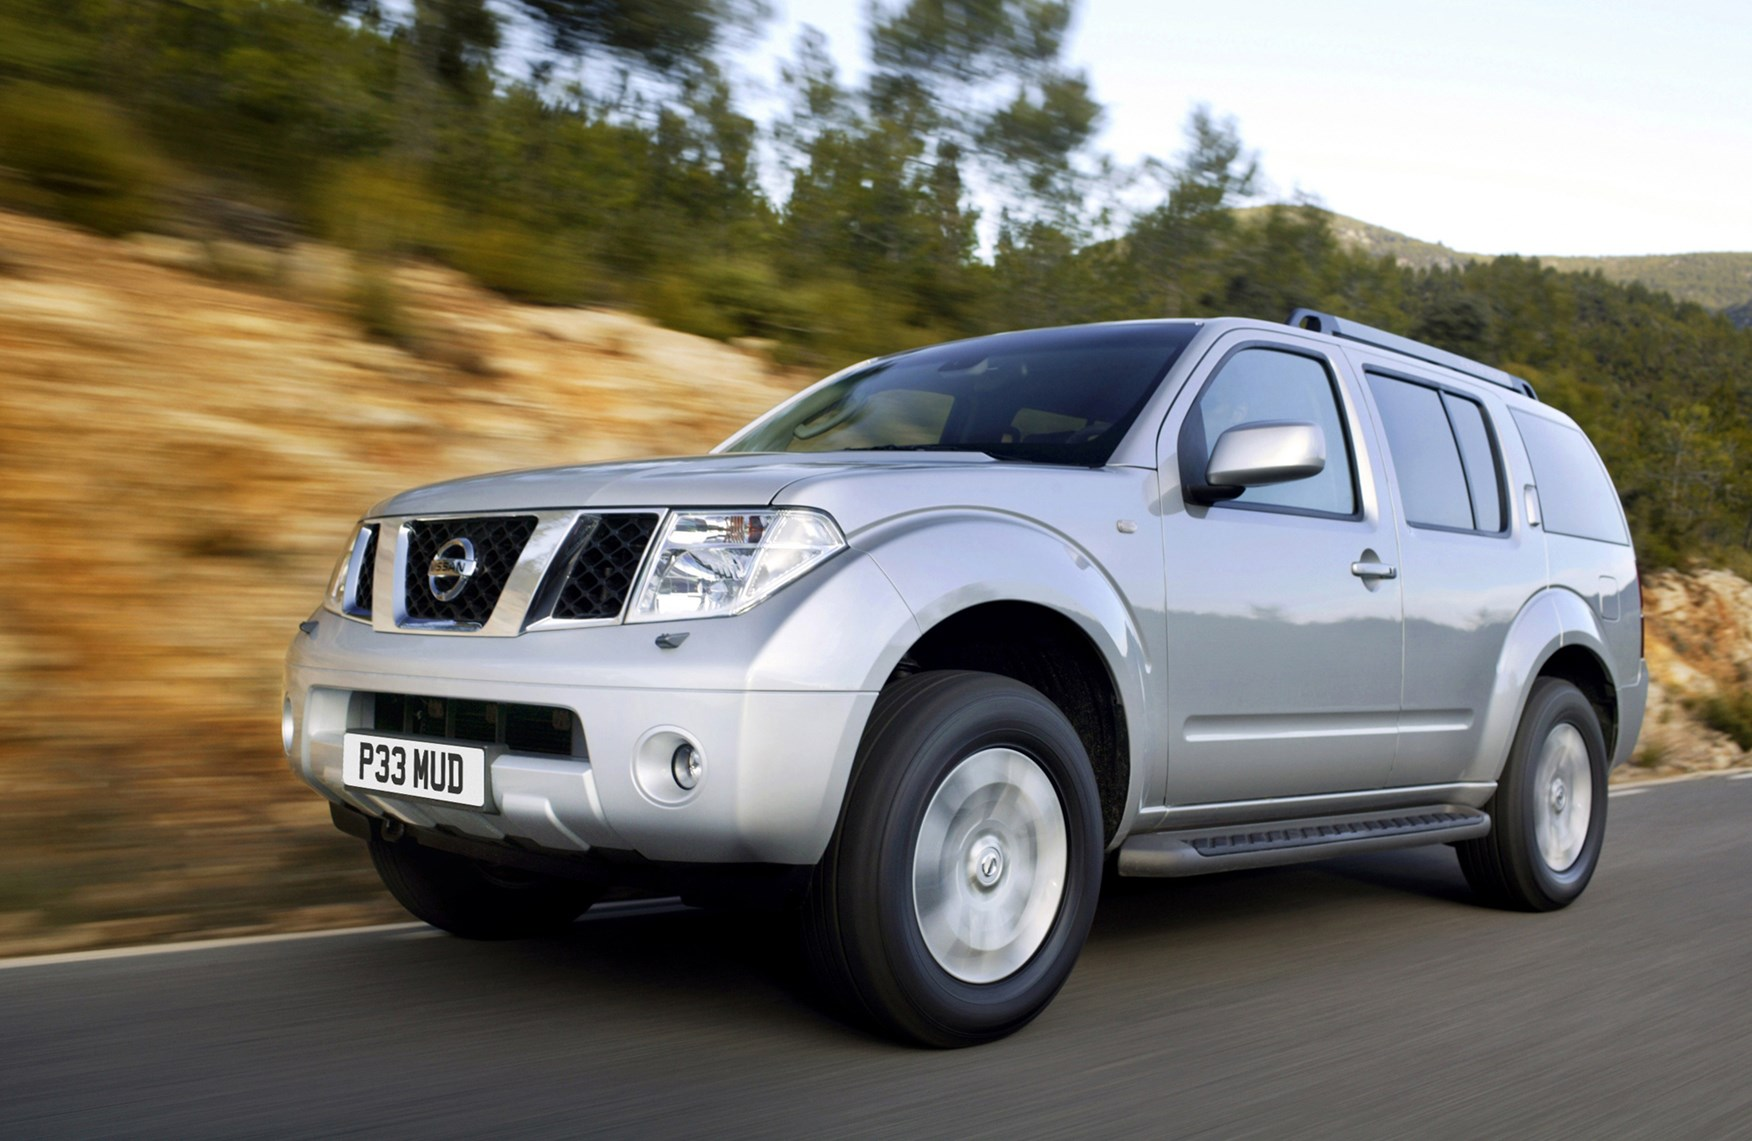 View All Images Of The Nissan Pathfinder 05 14